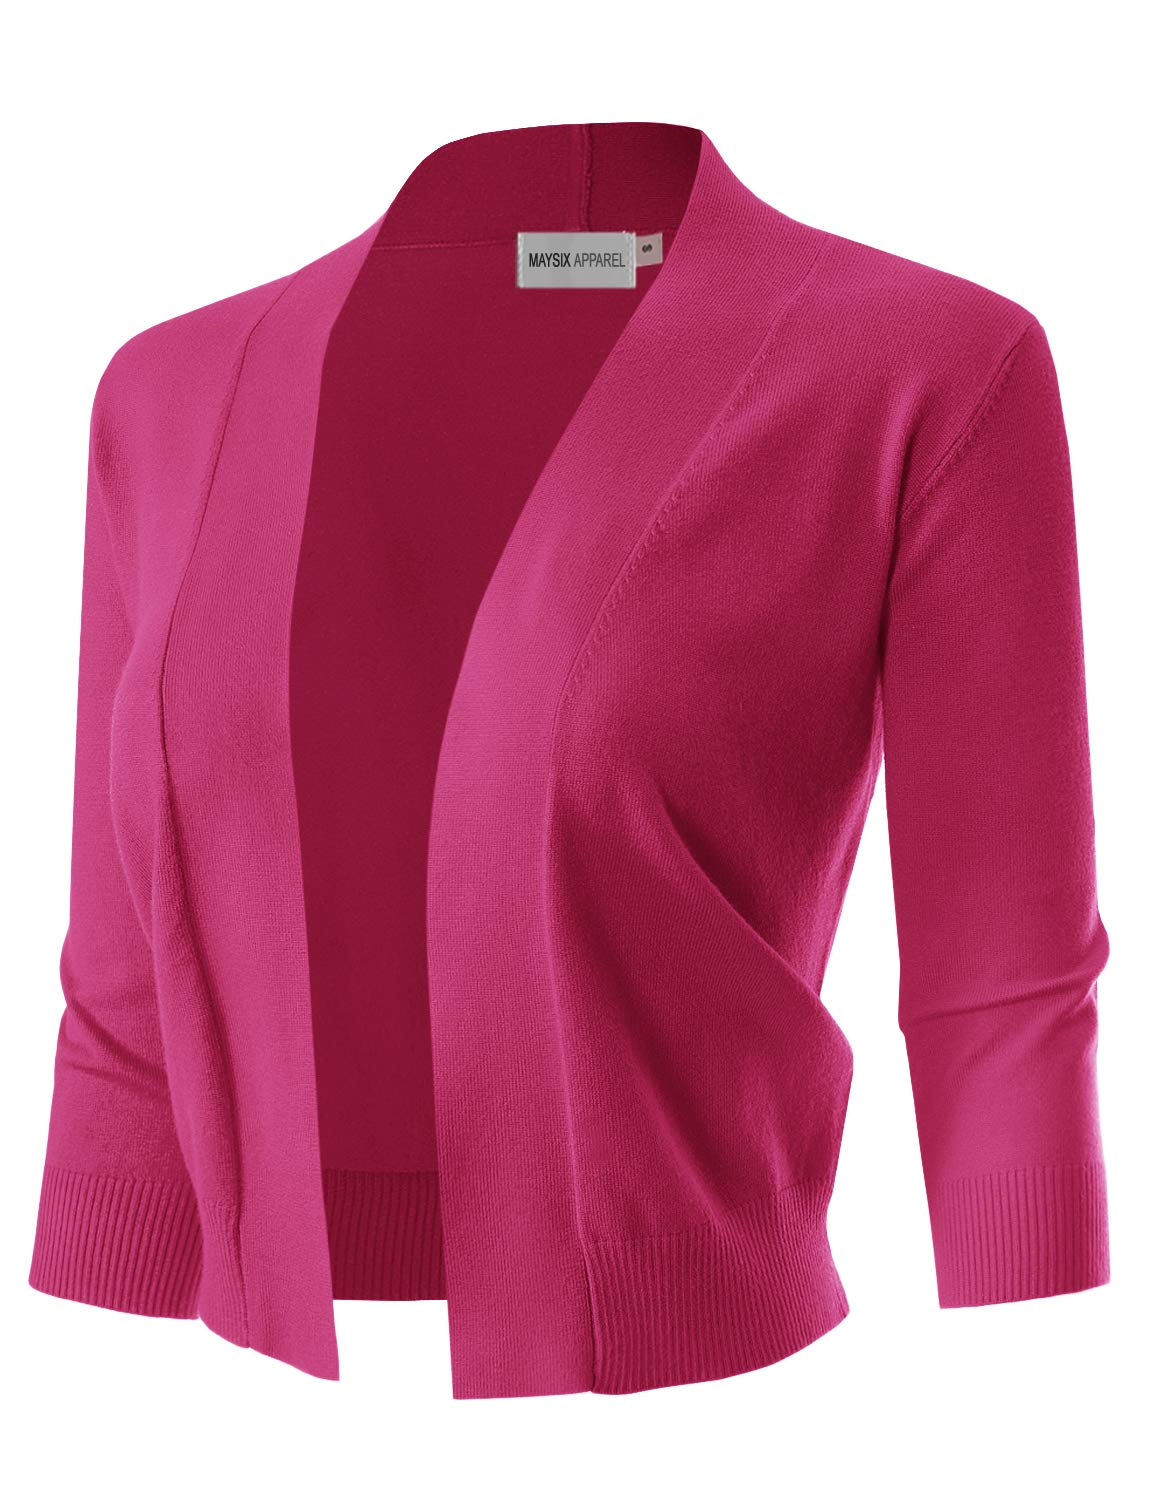 MAYSIX APPAREL 3/4 Sleeve Solid Open Bolero Cropped Cardigan for Women Fuchsia L